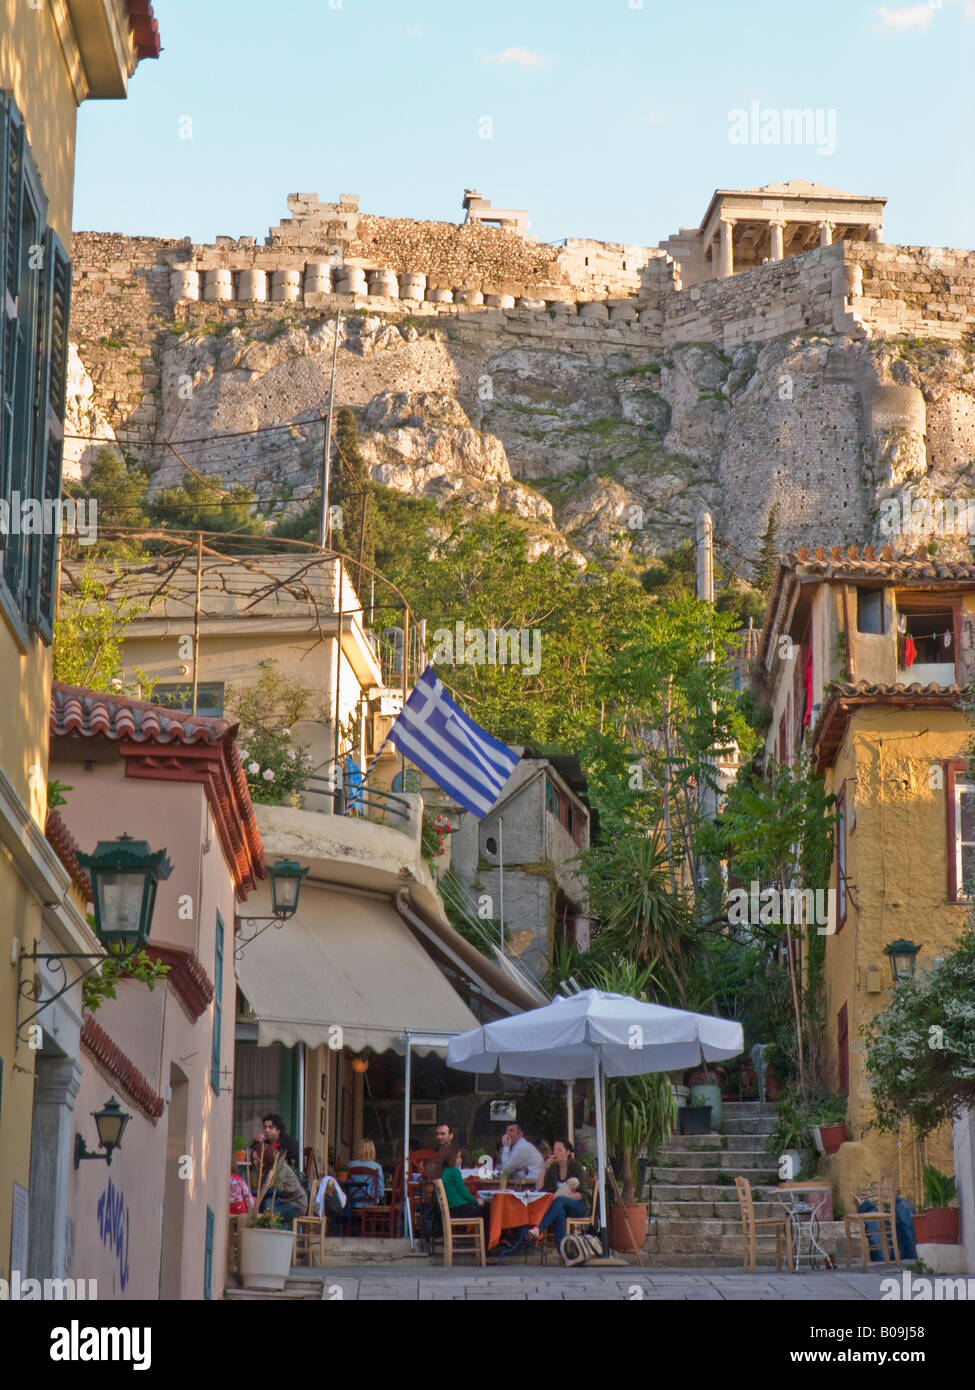 cafe, Plaka, Athens, Greece, with view of Acropolis and Erectheum temple - Stock Image